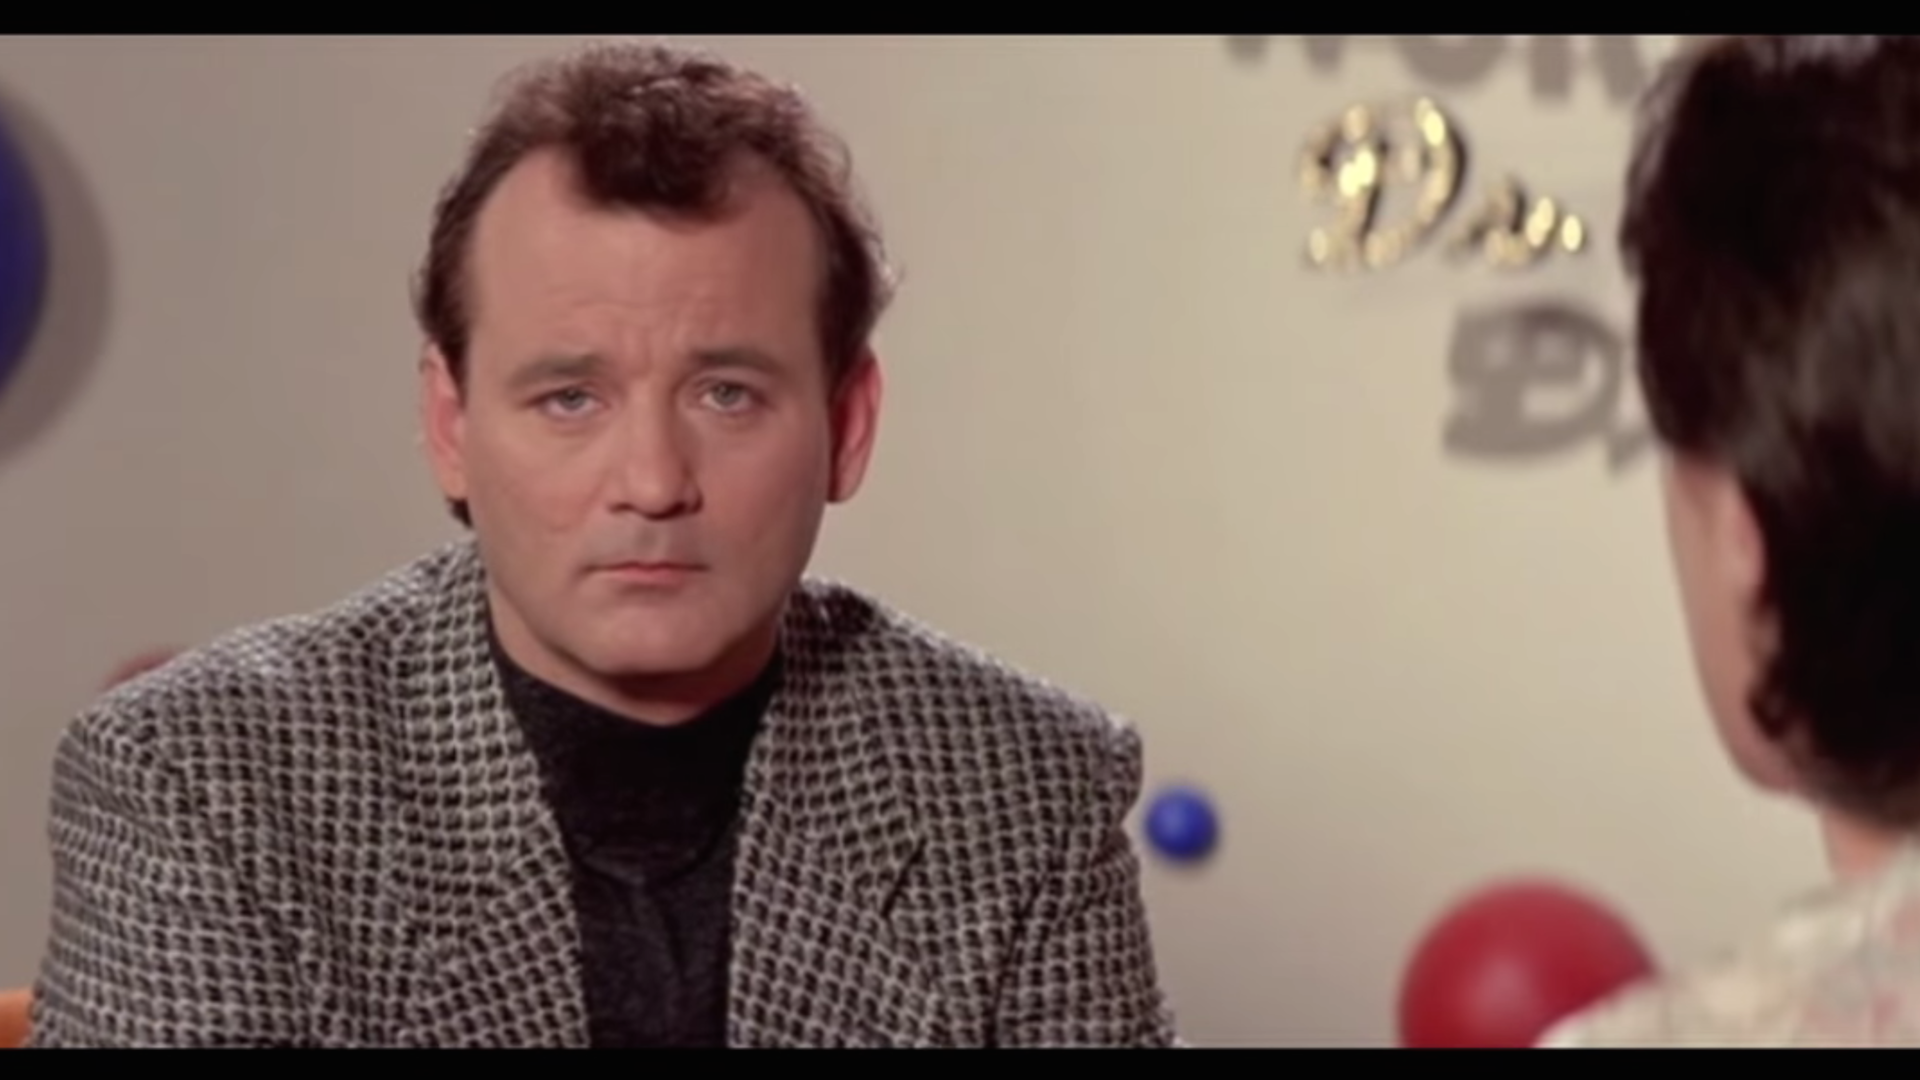 Ghostbusters II Predicted The World Will End On Valentine